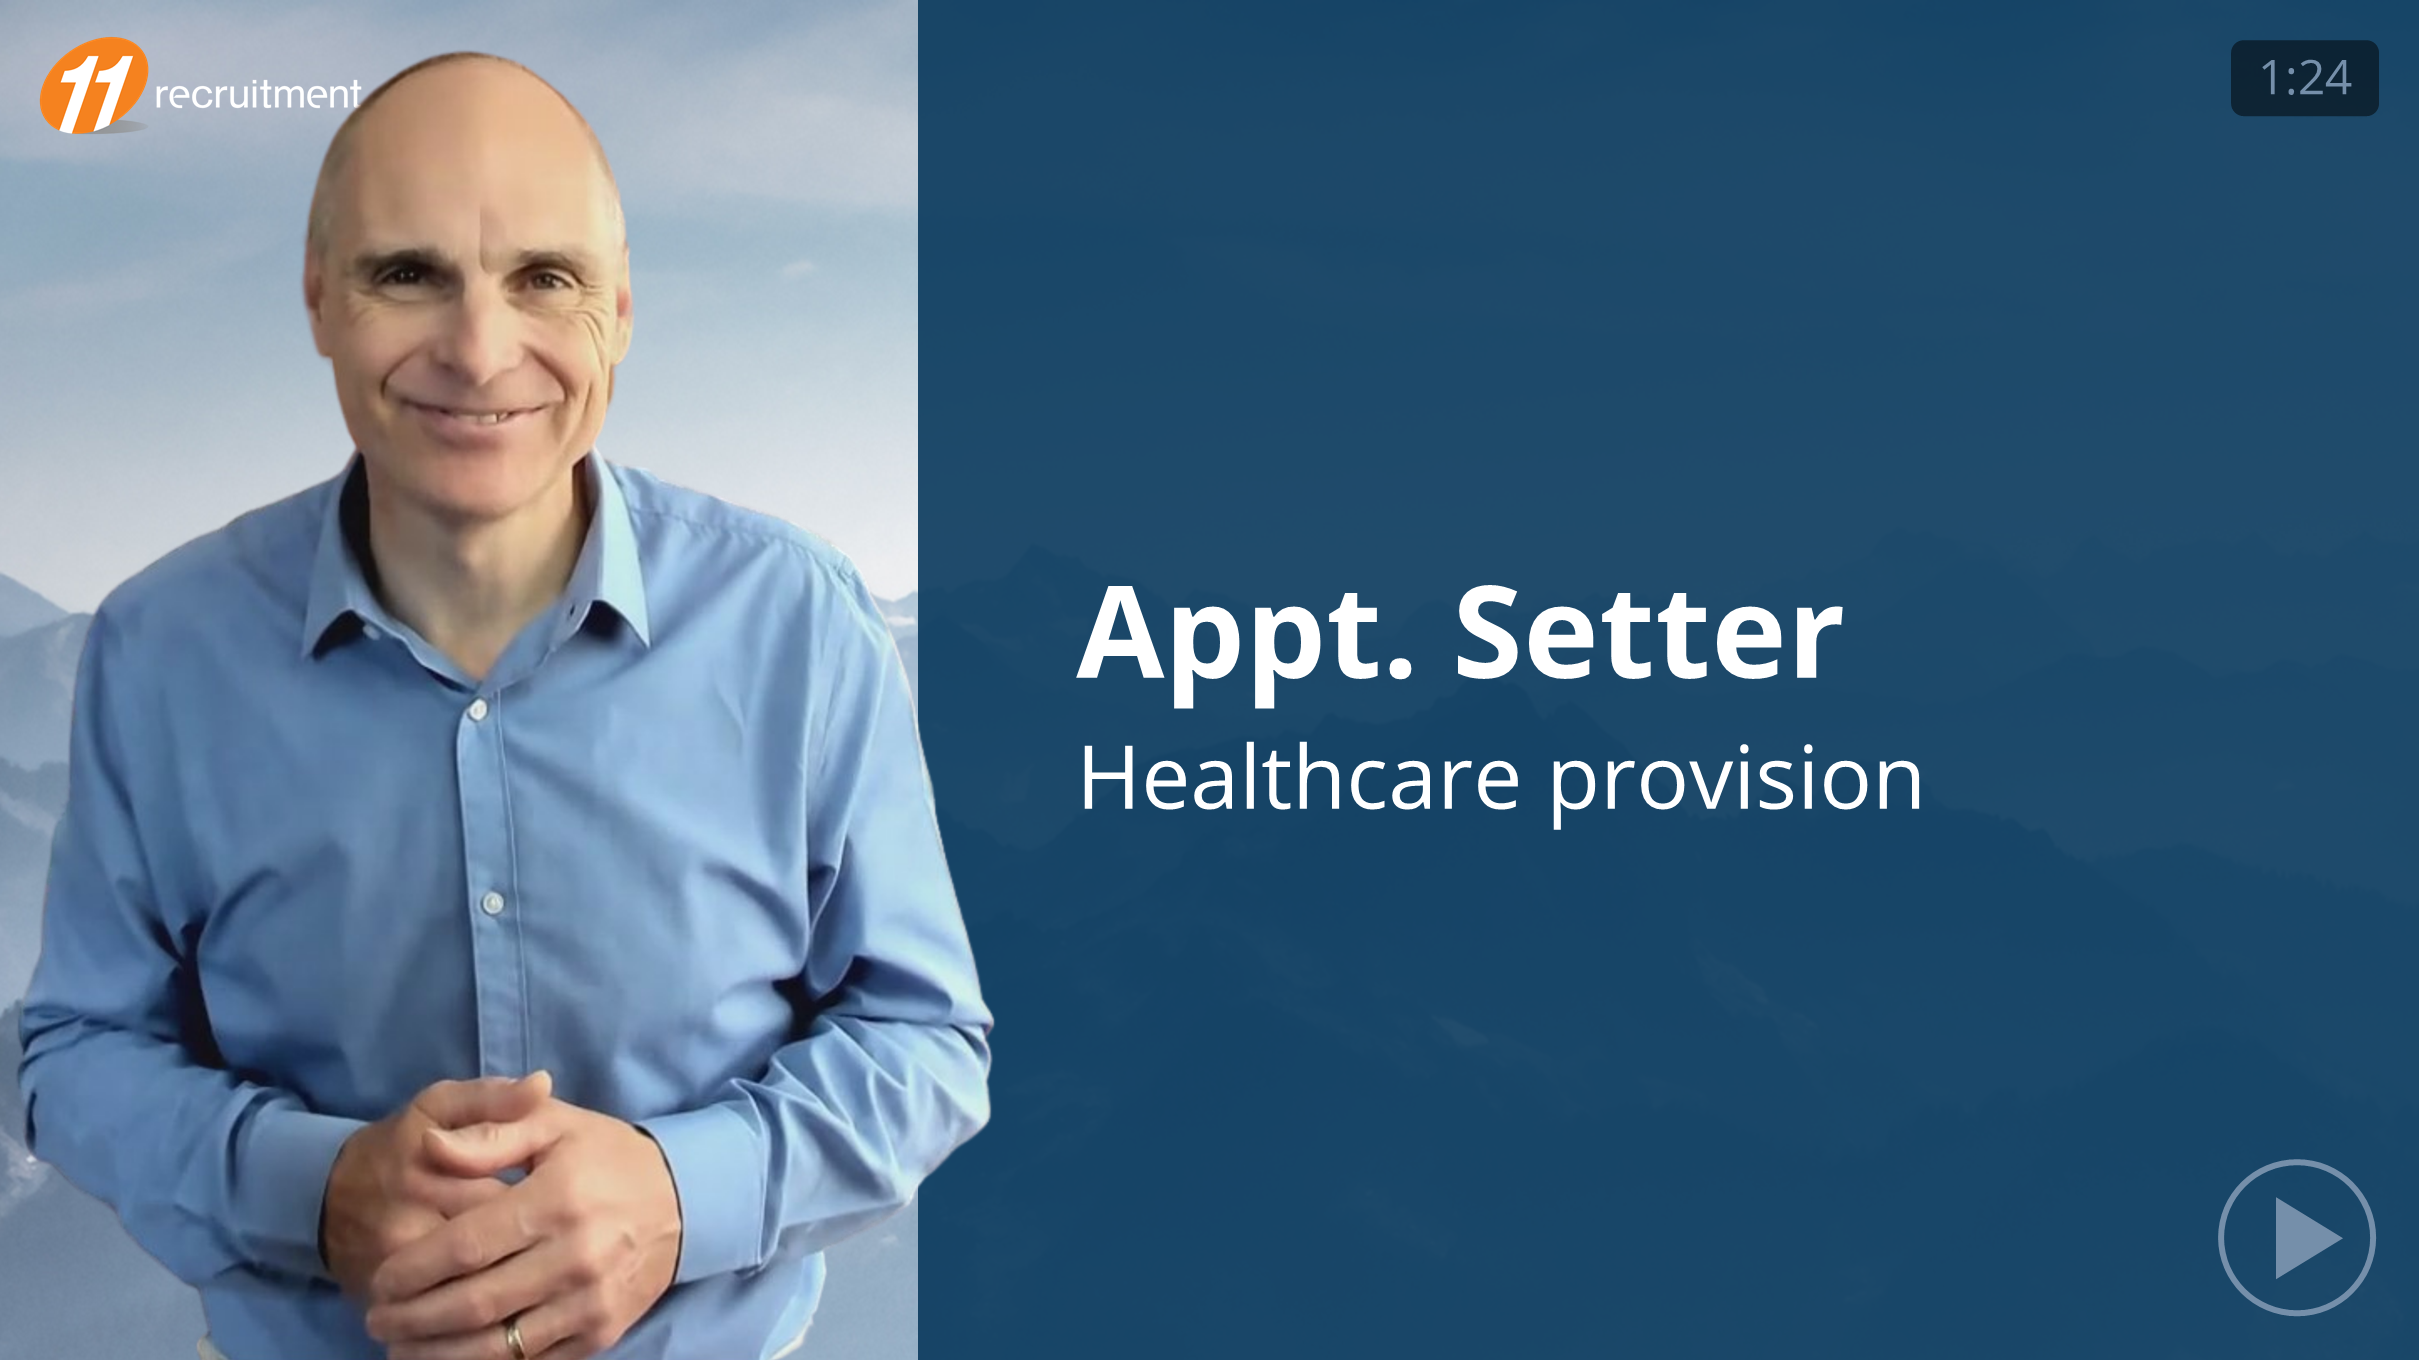 Appointment Setter - Healthcare